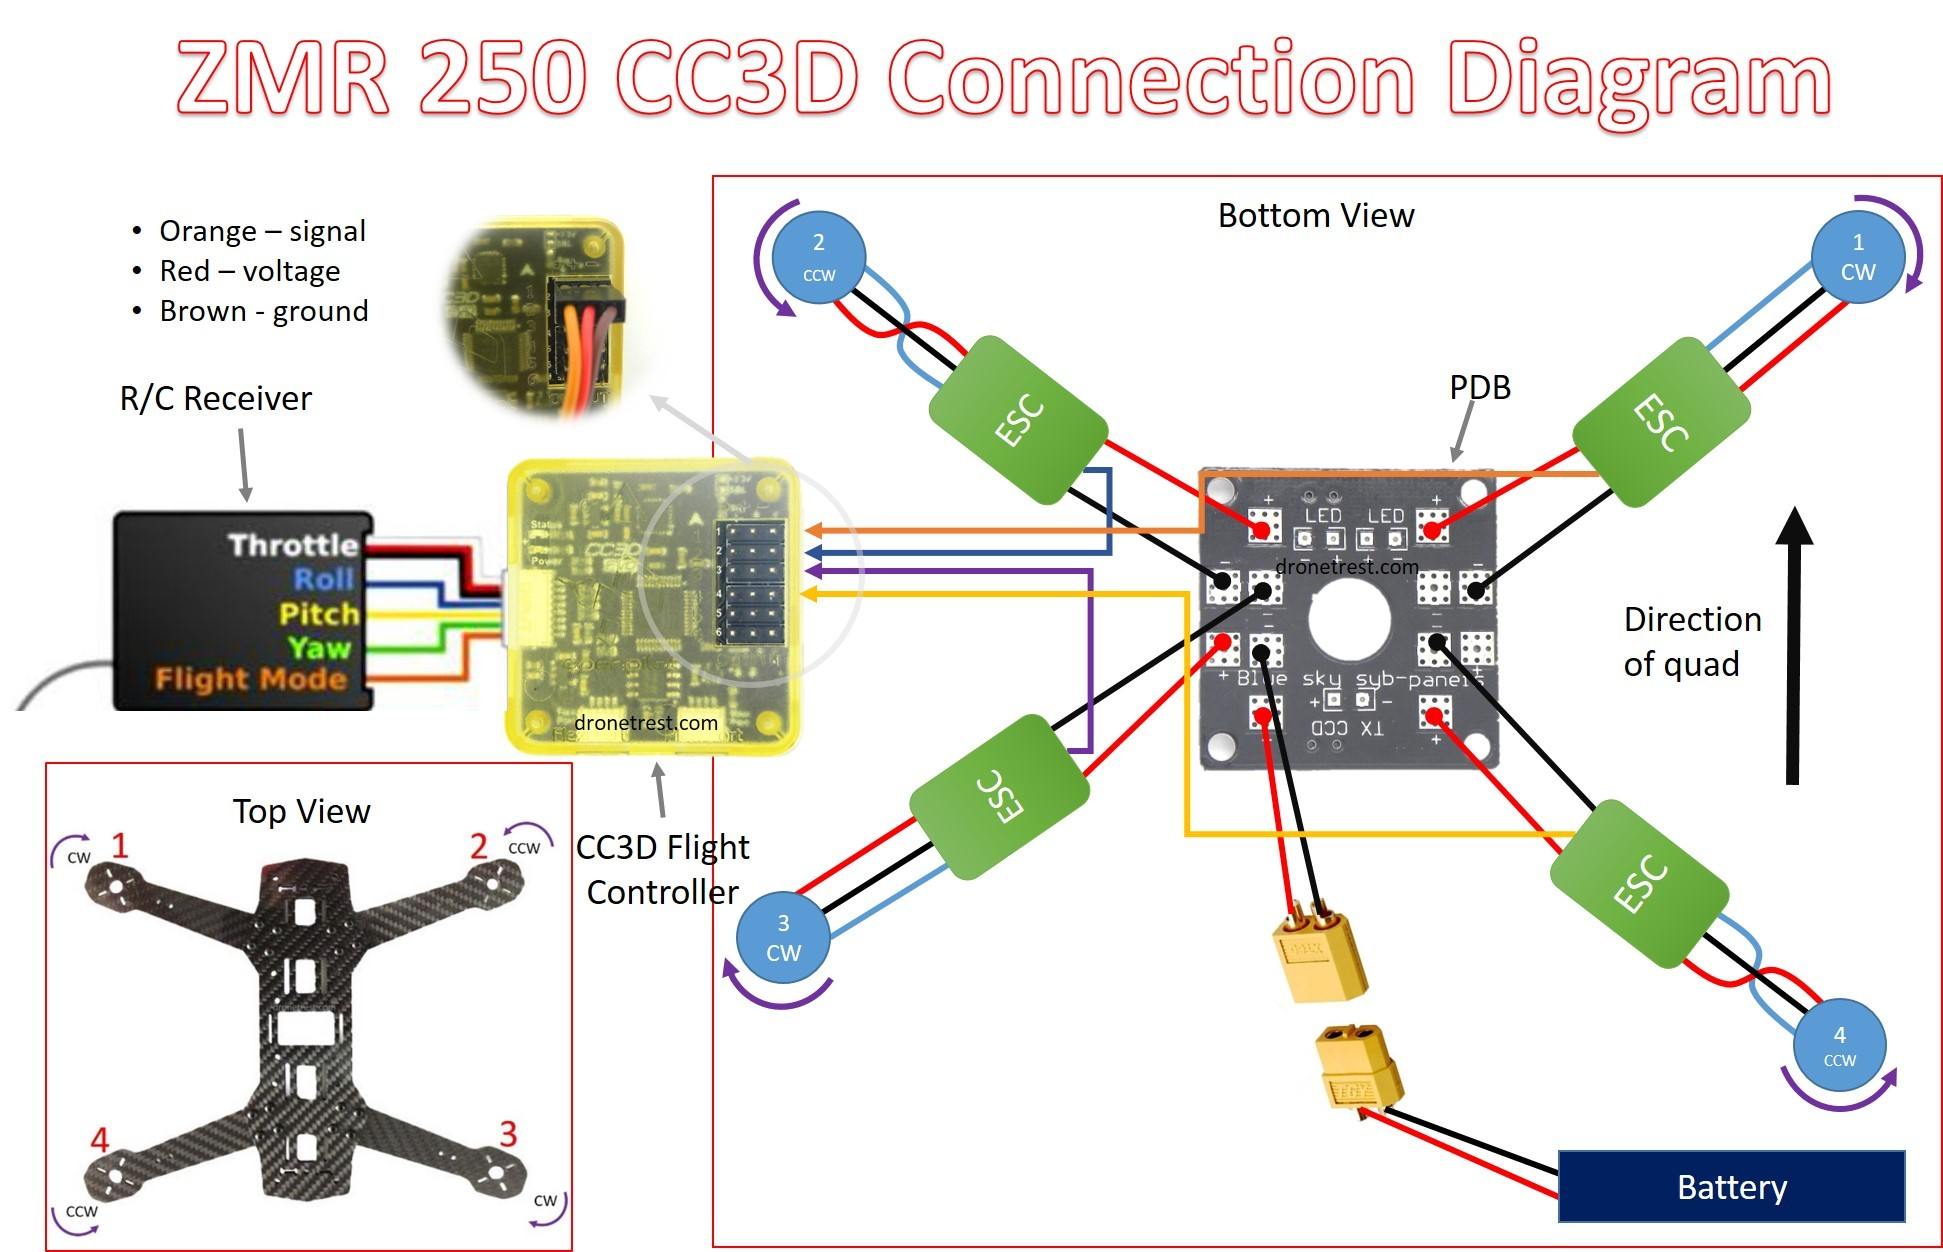 Remarkable Zmr 250 Wiring Harness Diy Wiring Diagram Database Wiring Digital Resources Lavecompassionincorg